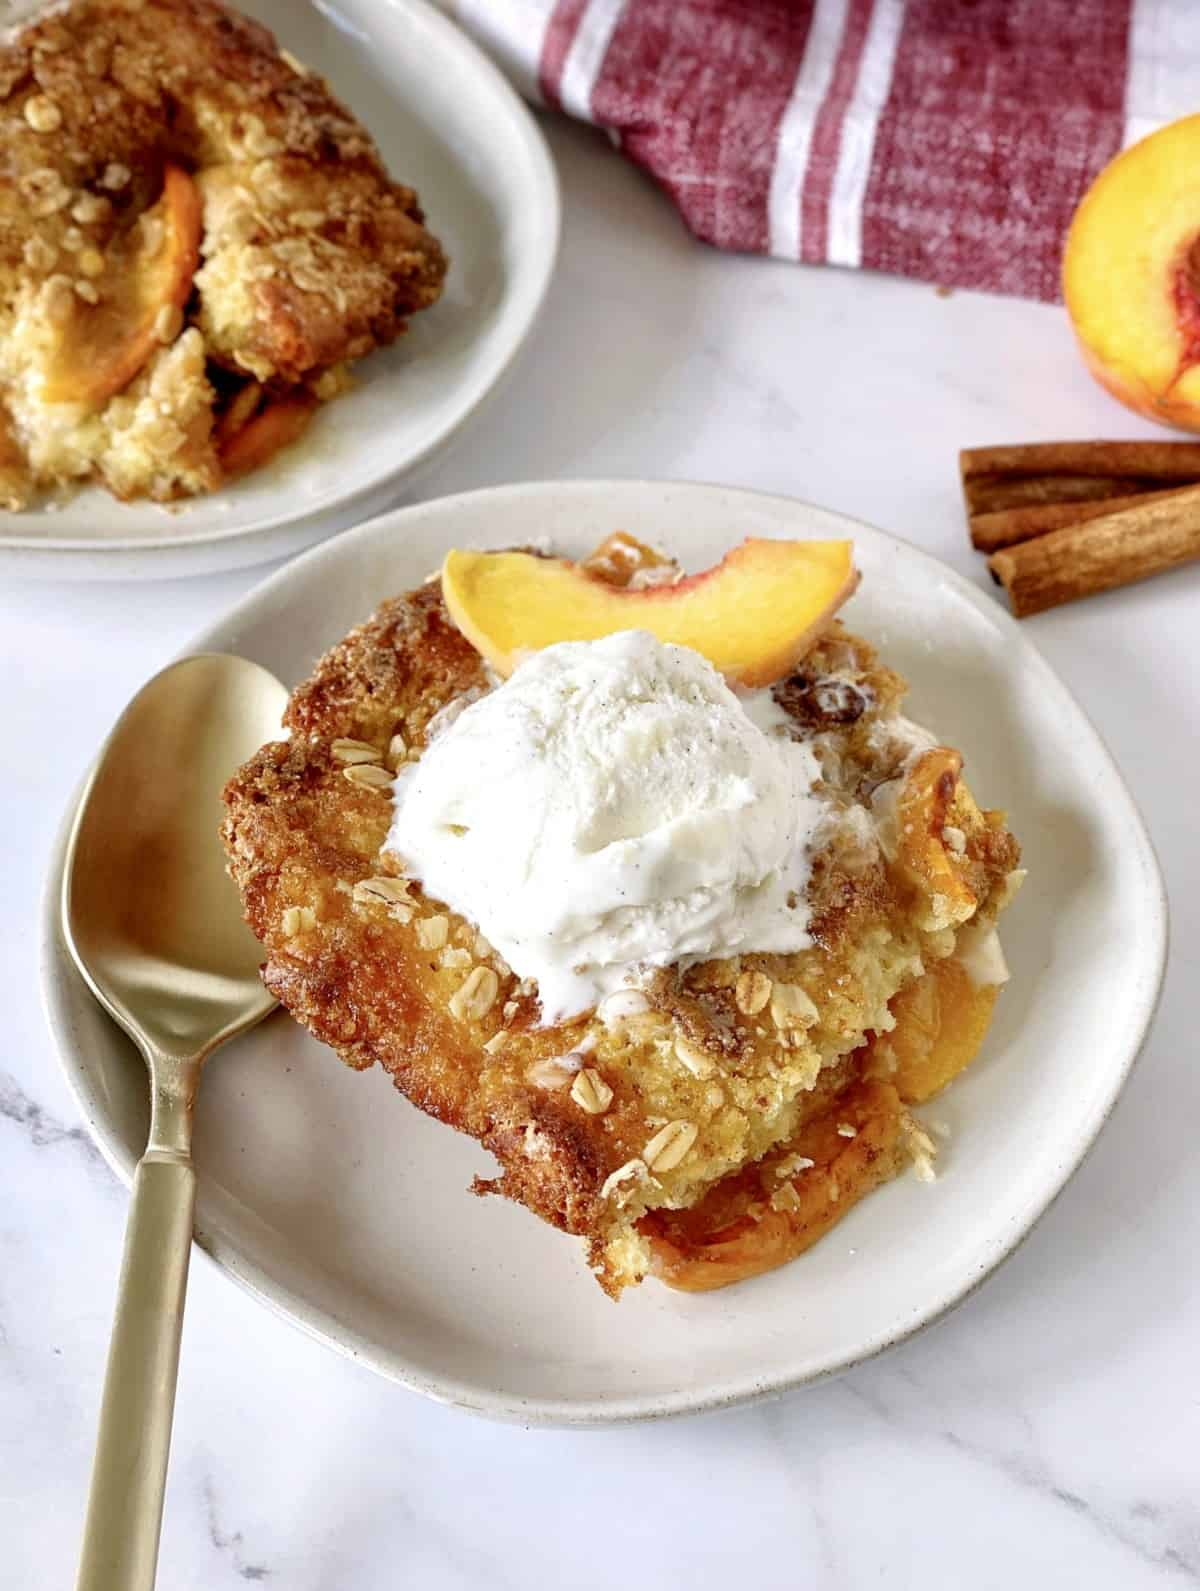 peach cobbler with vanilla ice cream on top with a fork on a plate